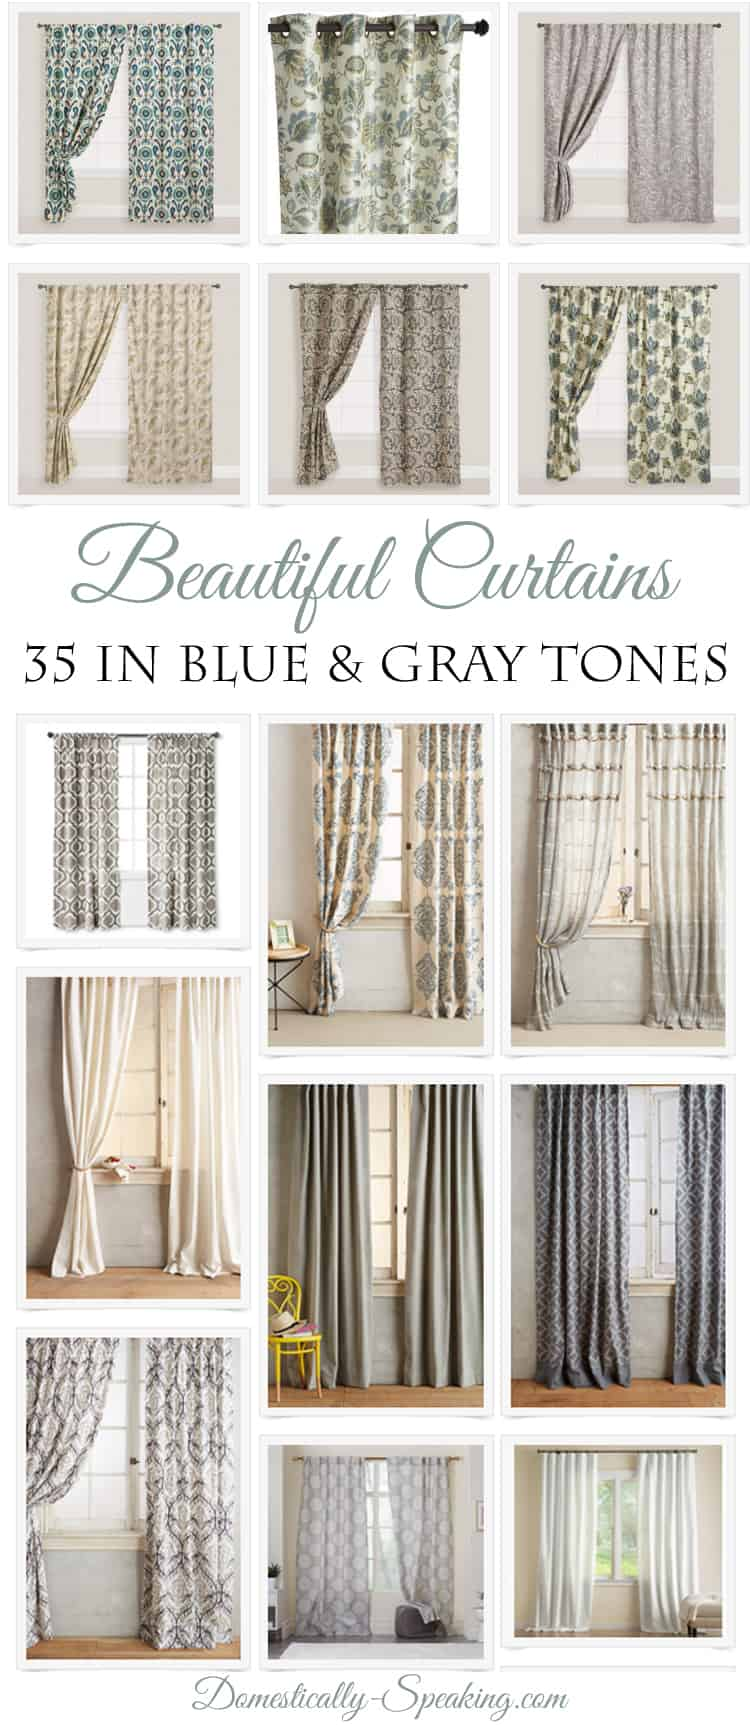 35 Beautiful Curtains - Domestically Speaking on Master Bedroom Curtain Ideas  id=80744